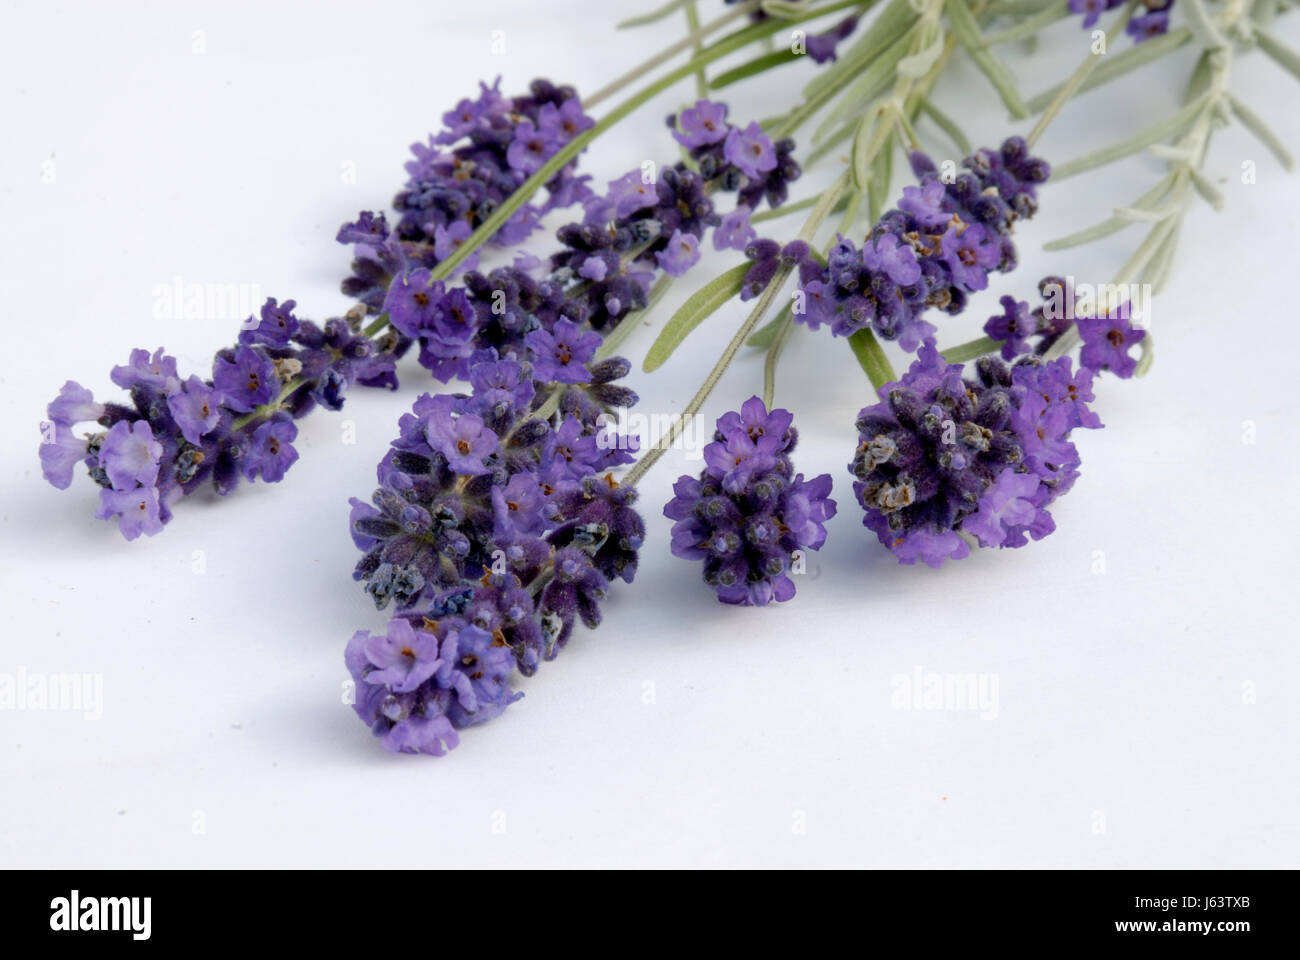 bloom blossom flourish flourishing violet lavender shrub cultigen blue optional Stock Photo